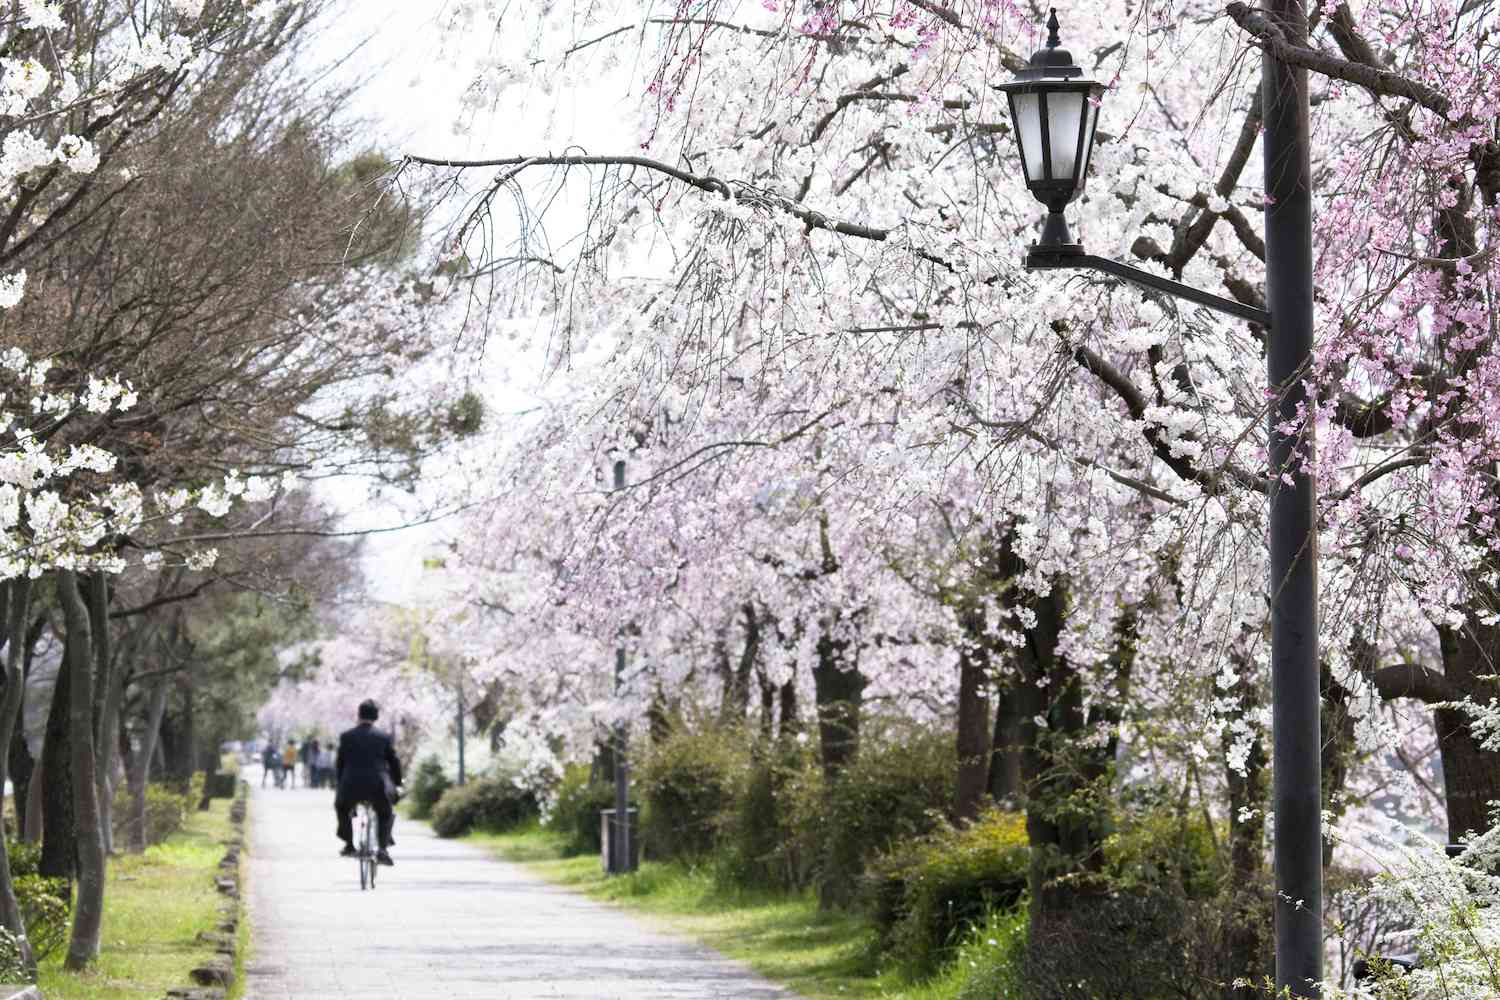 Cherry blossoms in full bloom as a man rides his bike